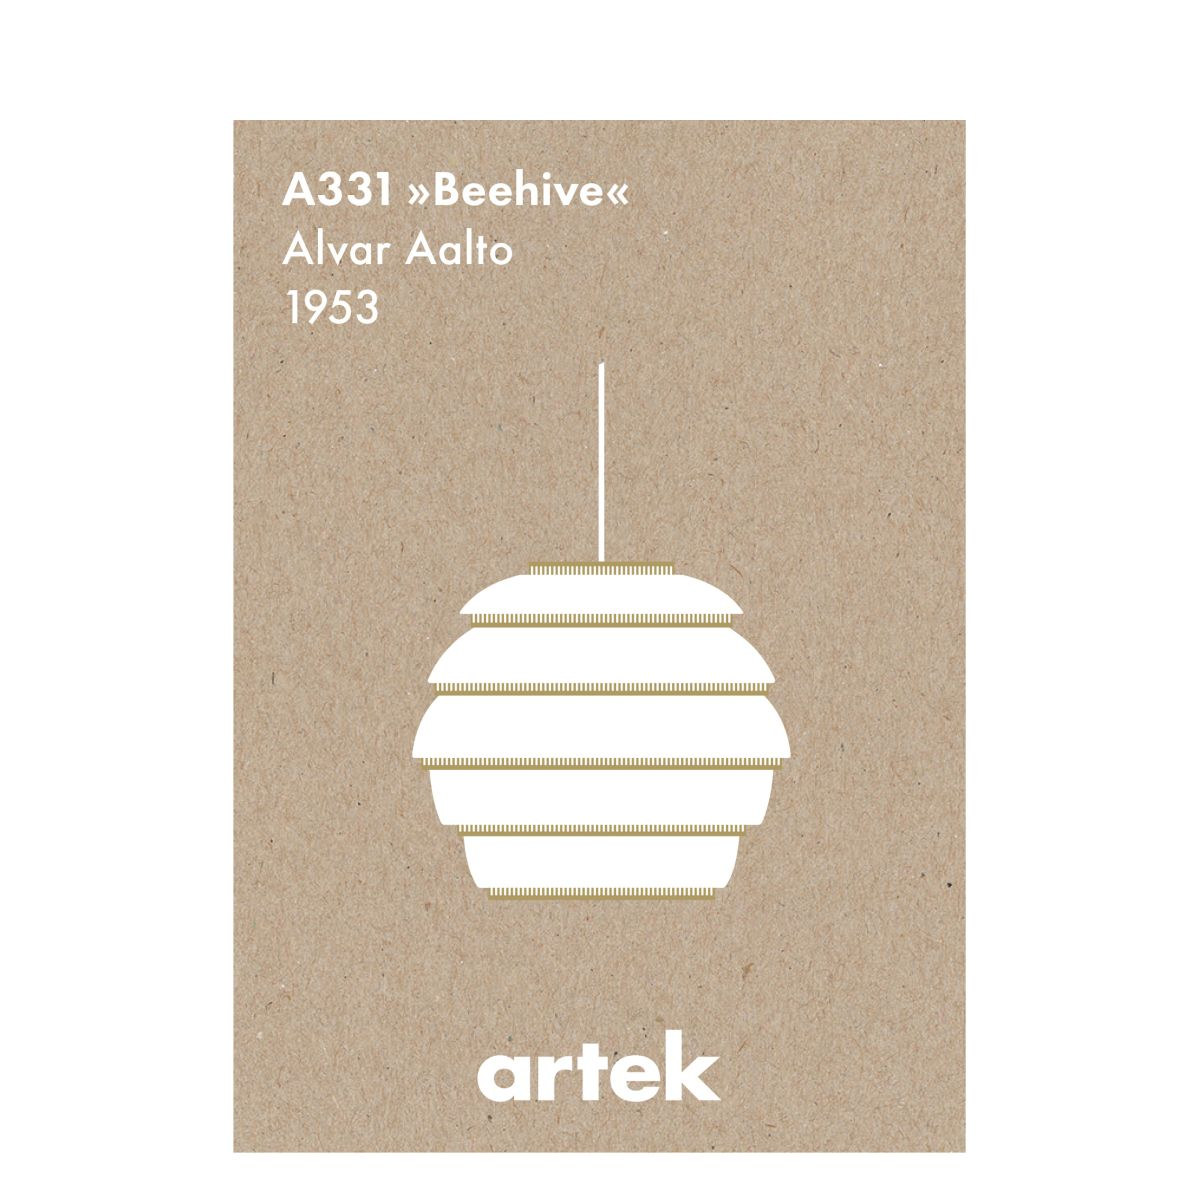 Artek-Icons-Greige-Pendant-Light-A331-Beehive-1843106_Web-1977560